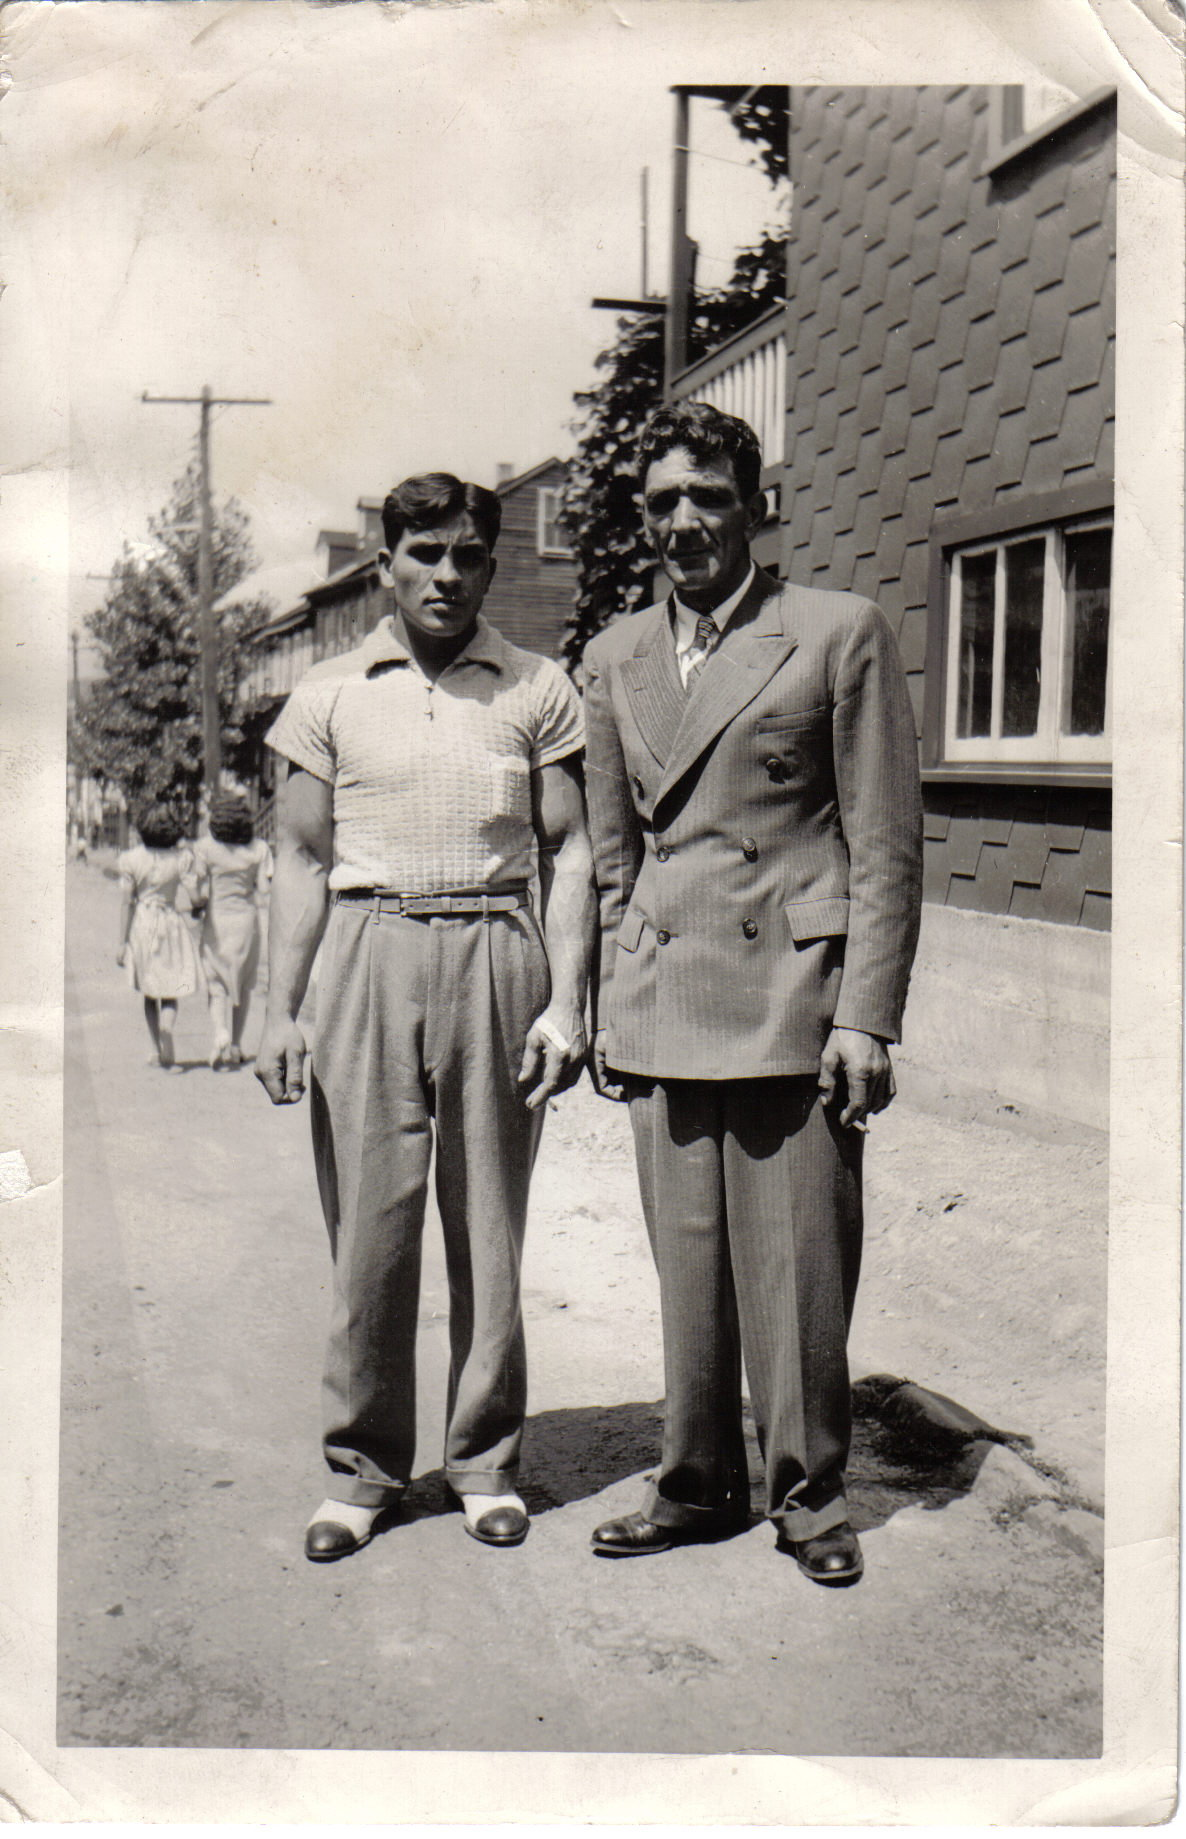 My, my grandfather looks handsome in his suit with his brother -in -law